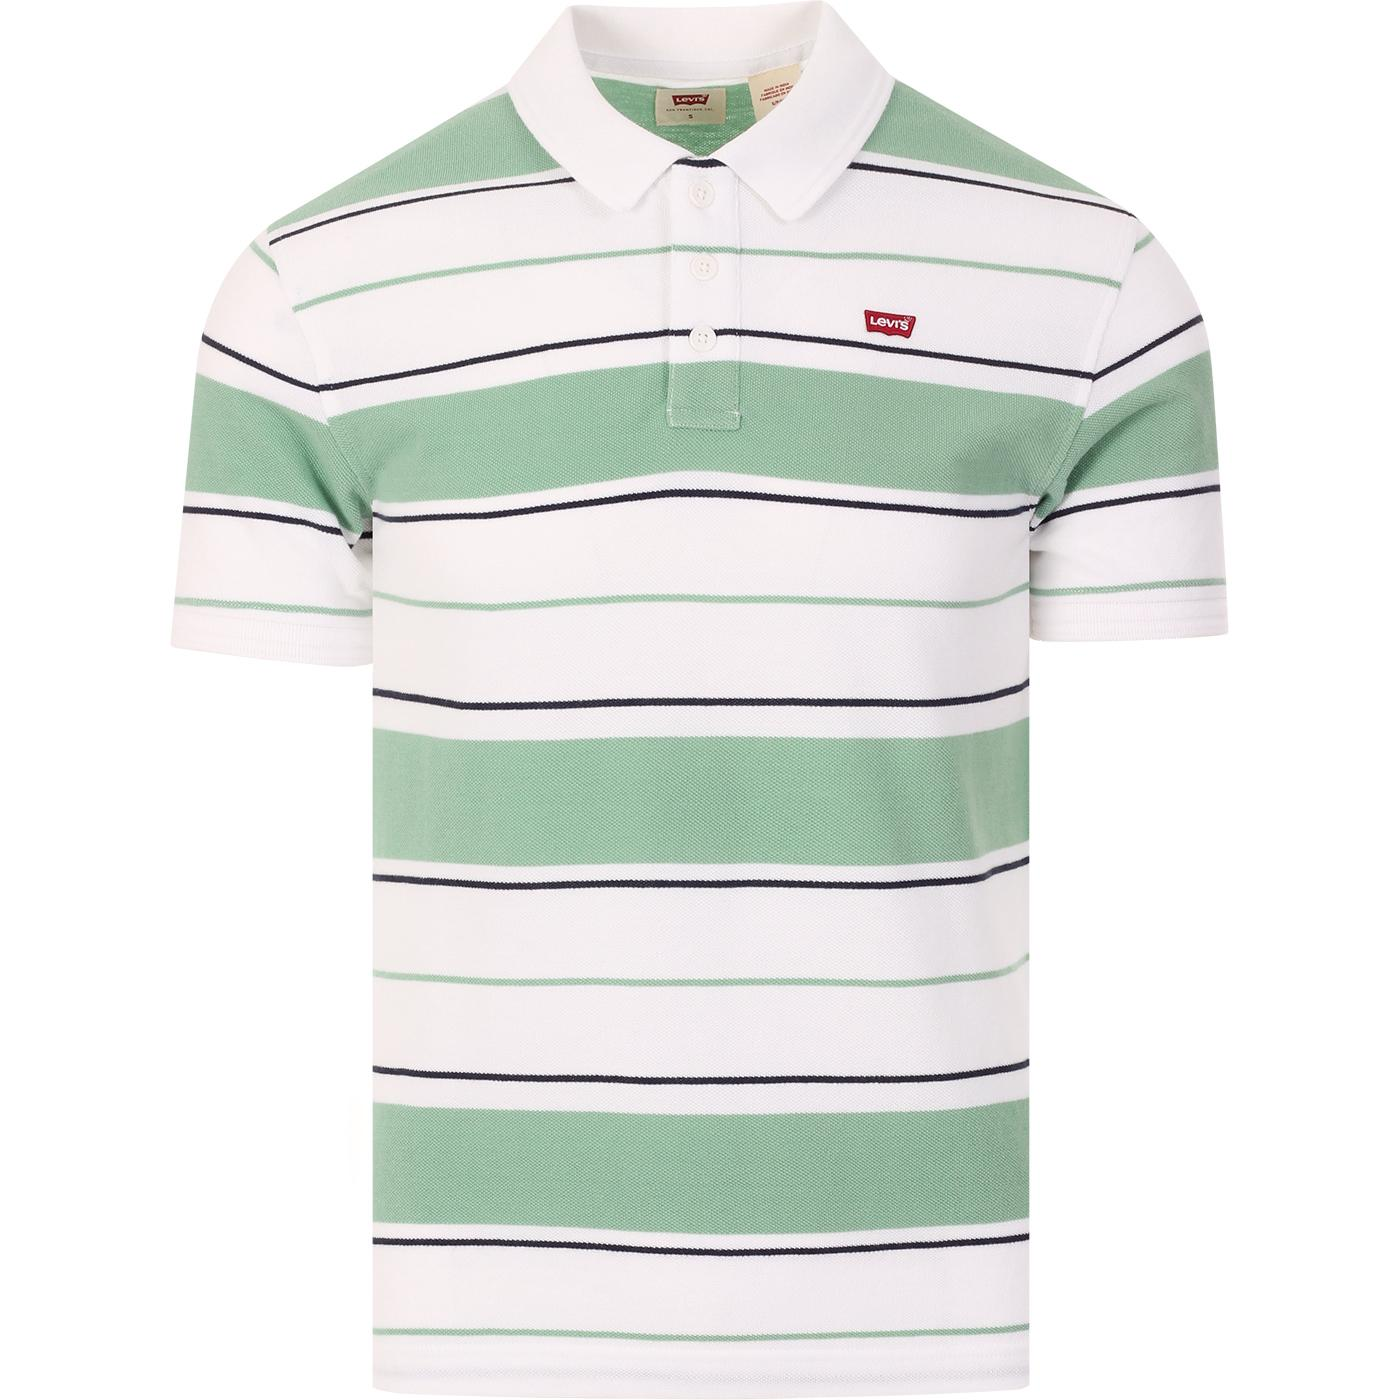 LEVI'S Retro Mod Stripe Housemark Patch Polo (W/G)